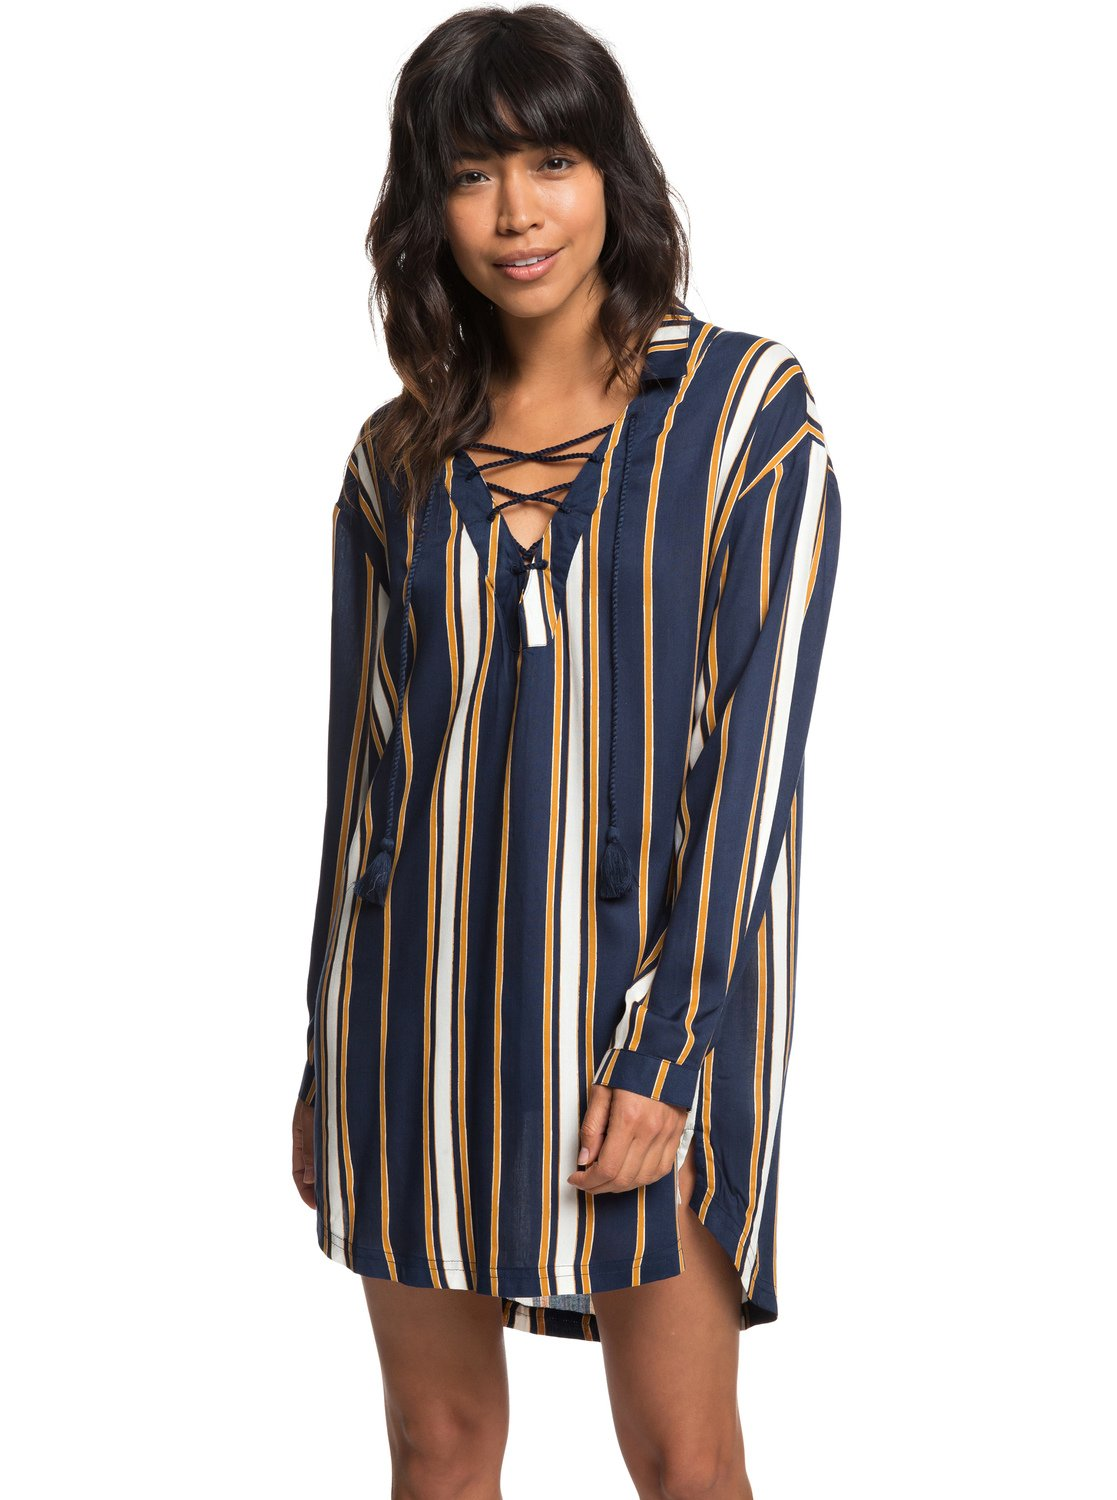 bb8d86f98197 0 Lonely For You - Long Sleeve Shirt Dress for Women Blue ERJX603139 Roxy